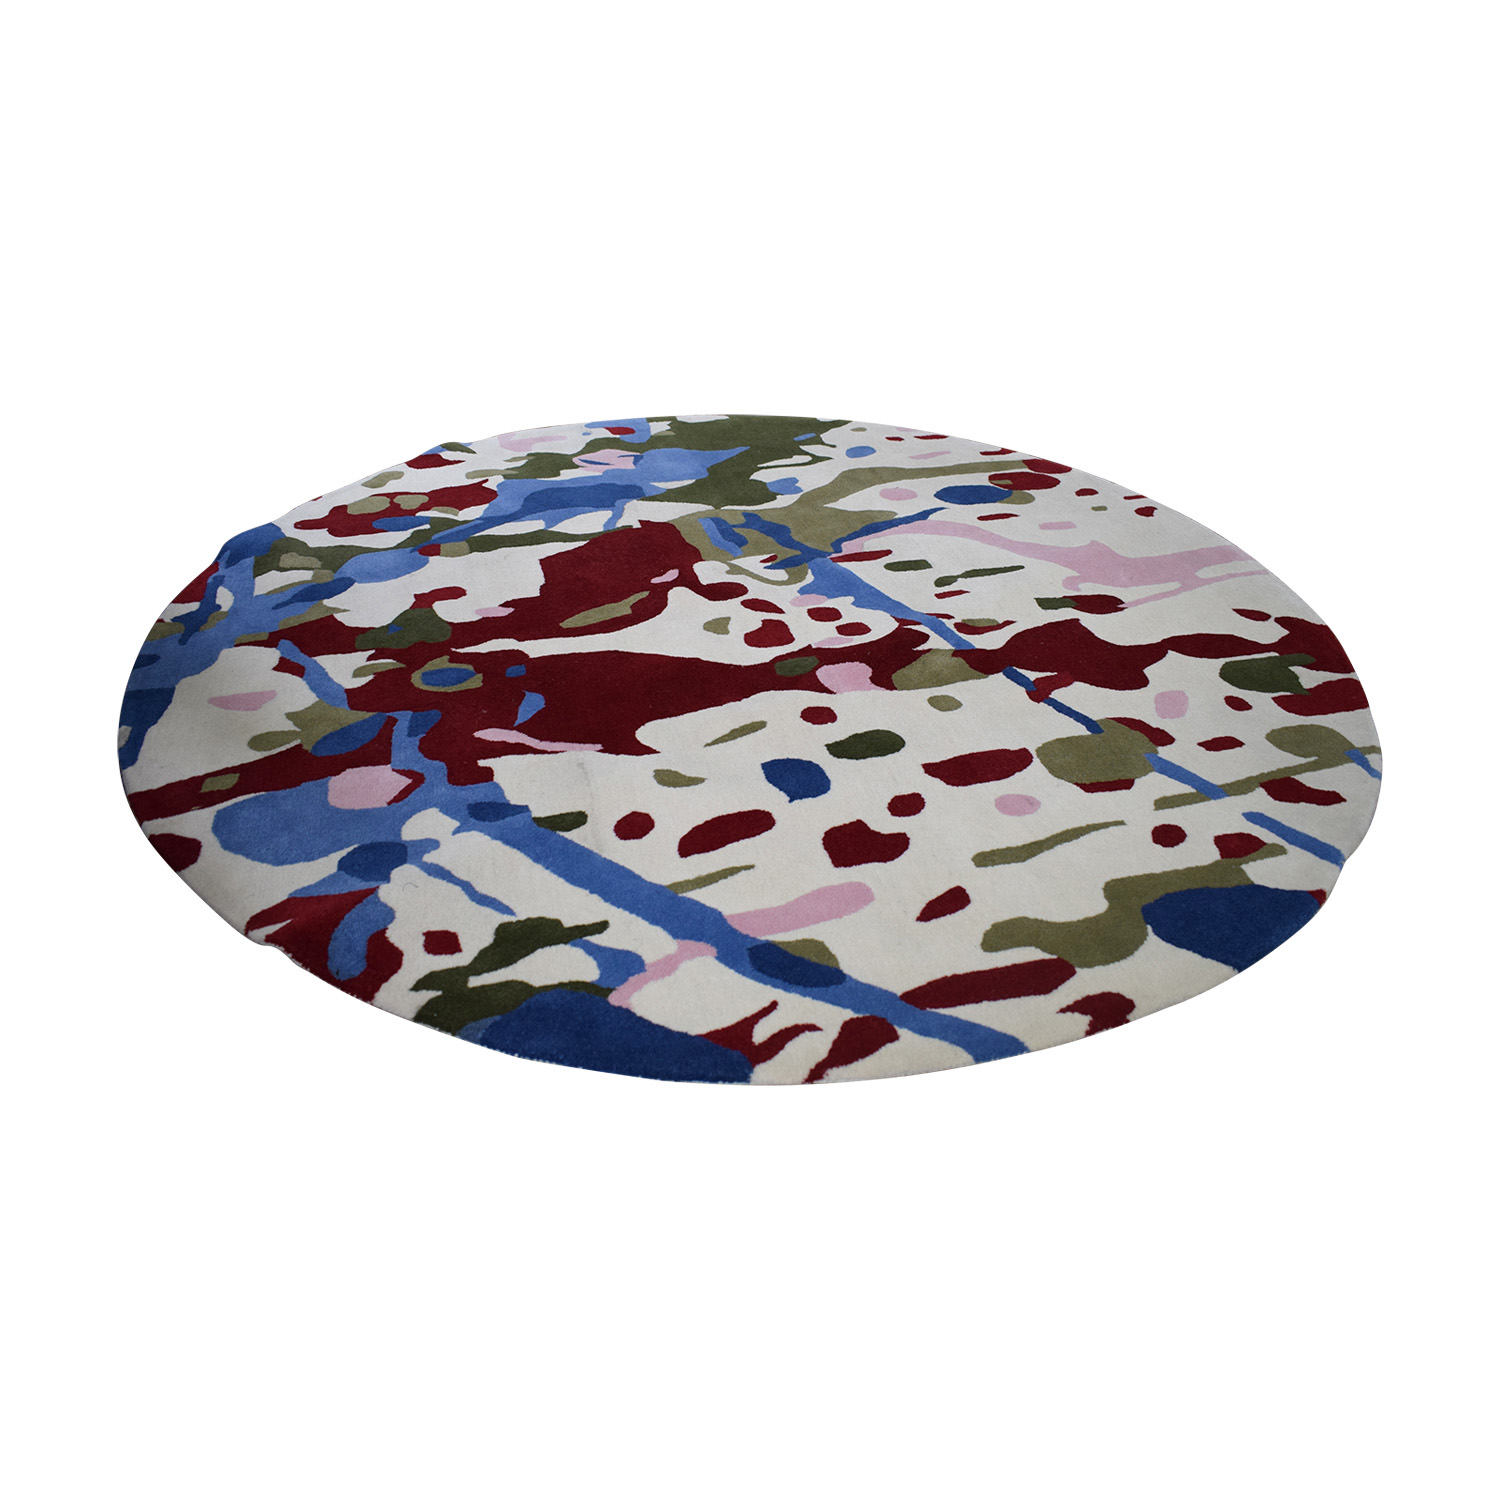 Obeetee Round Handtufted Multi-Colored Rug Obeetee